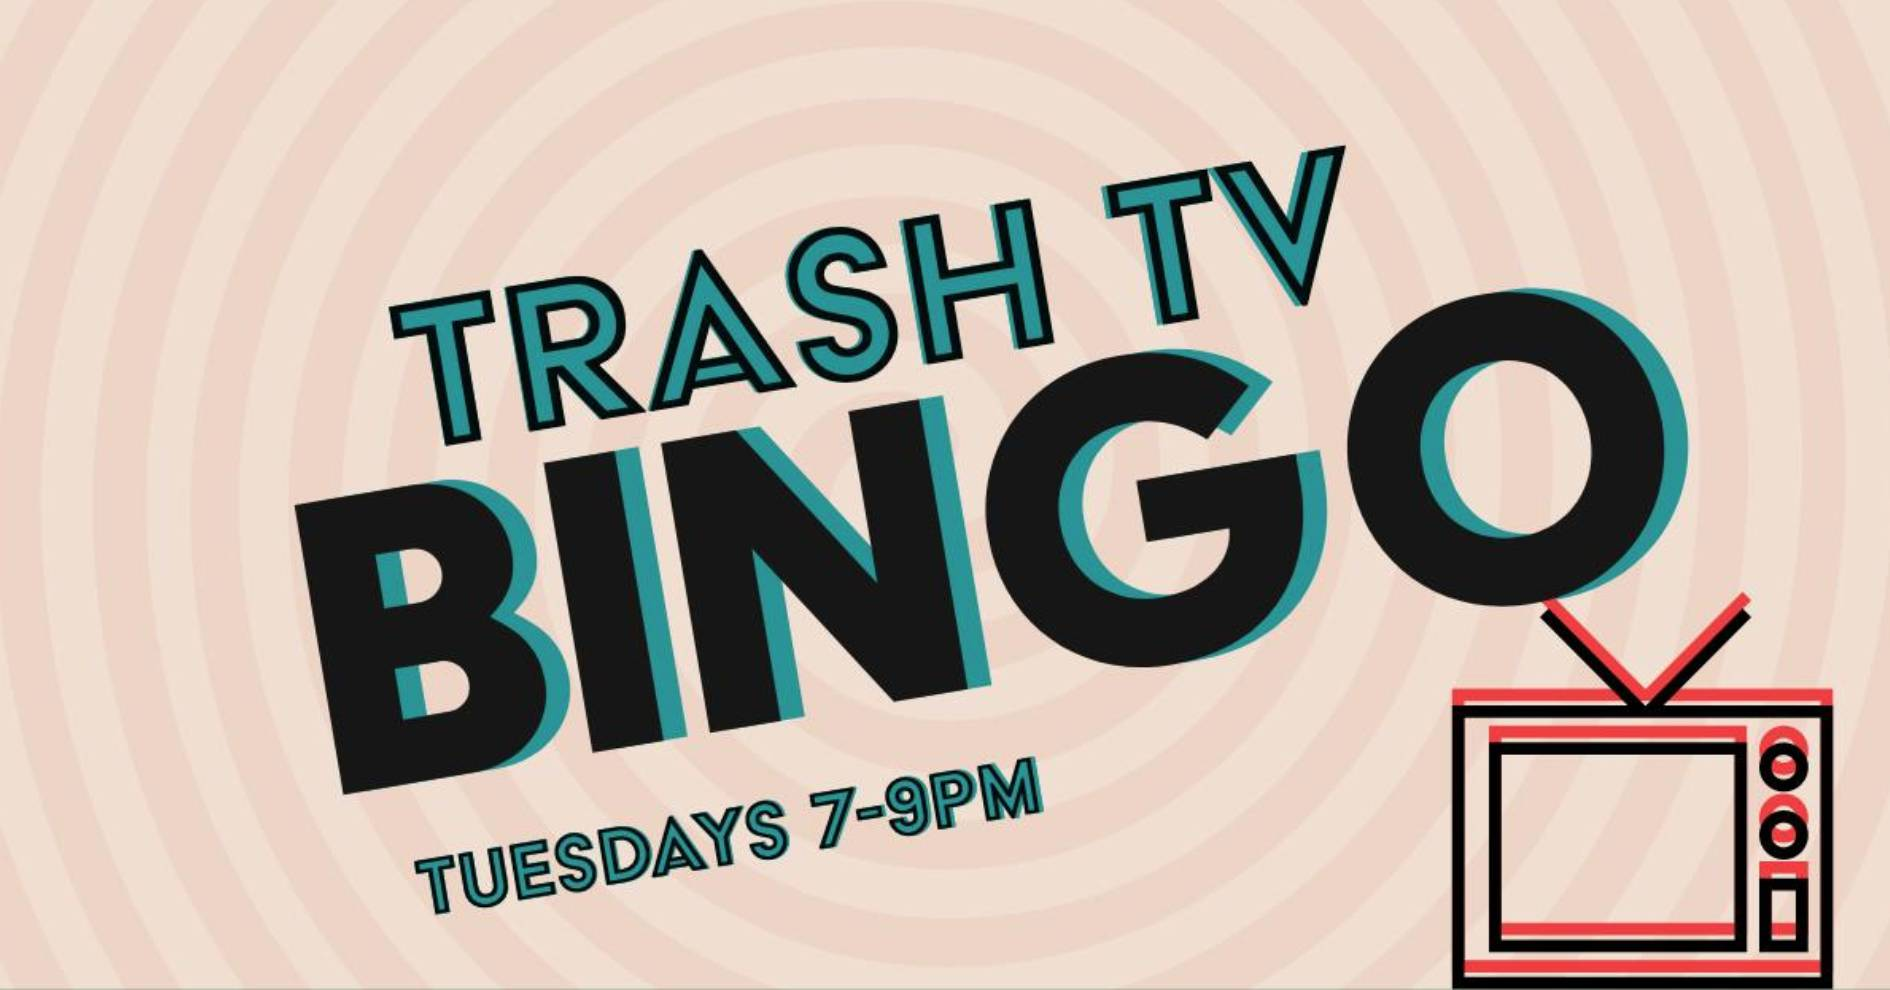 Trash TV Bingo